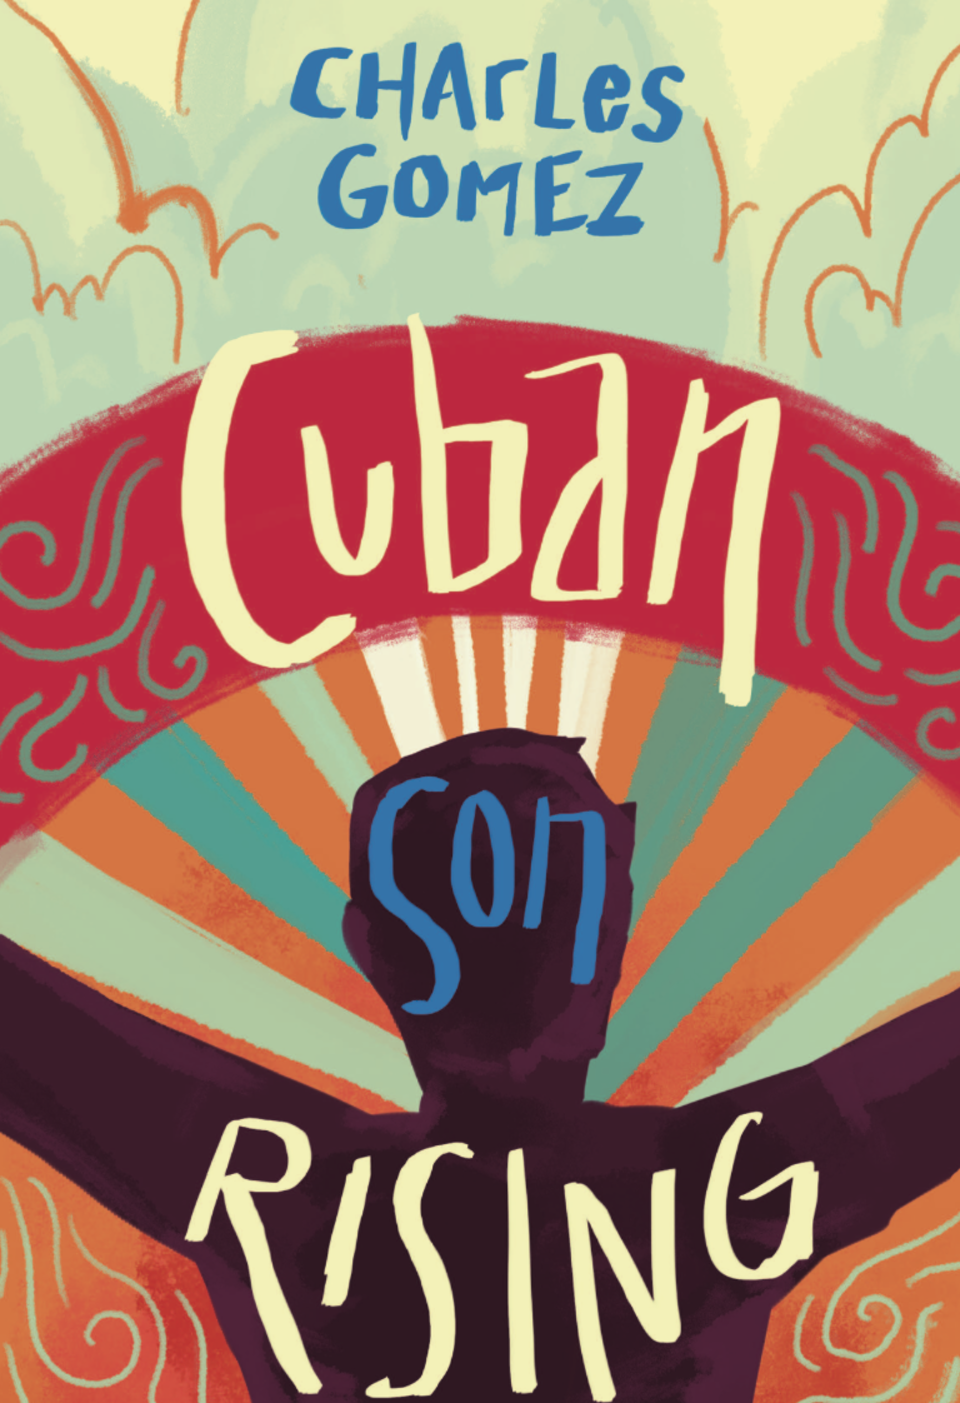 Cuban Son Rising is published by Koehler Books